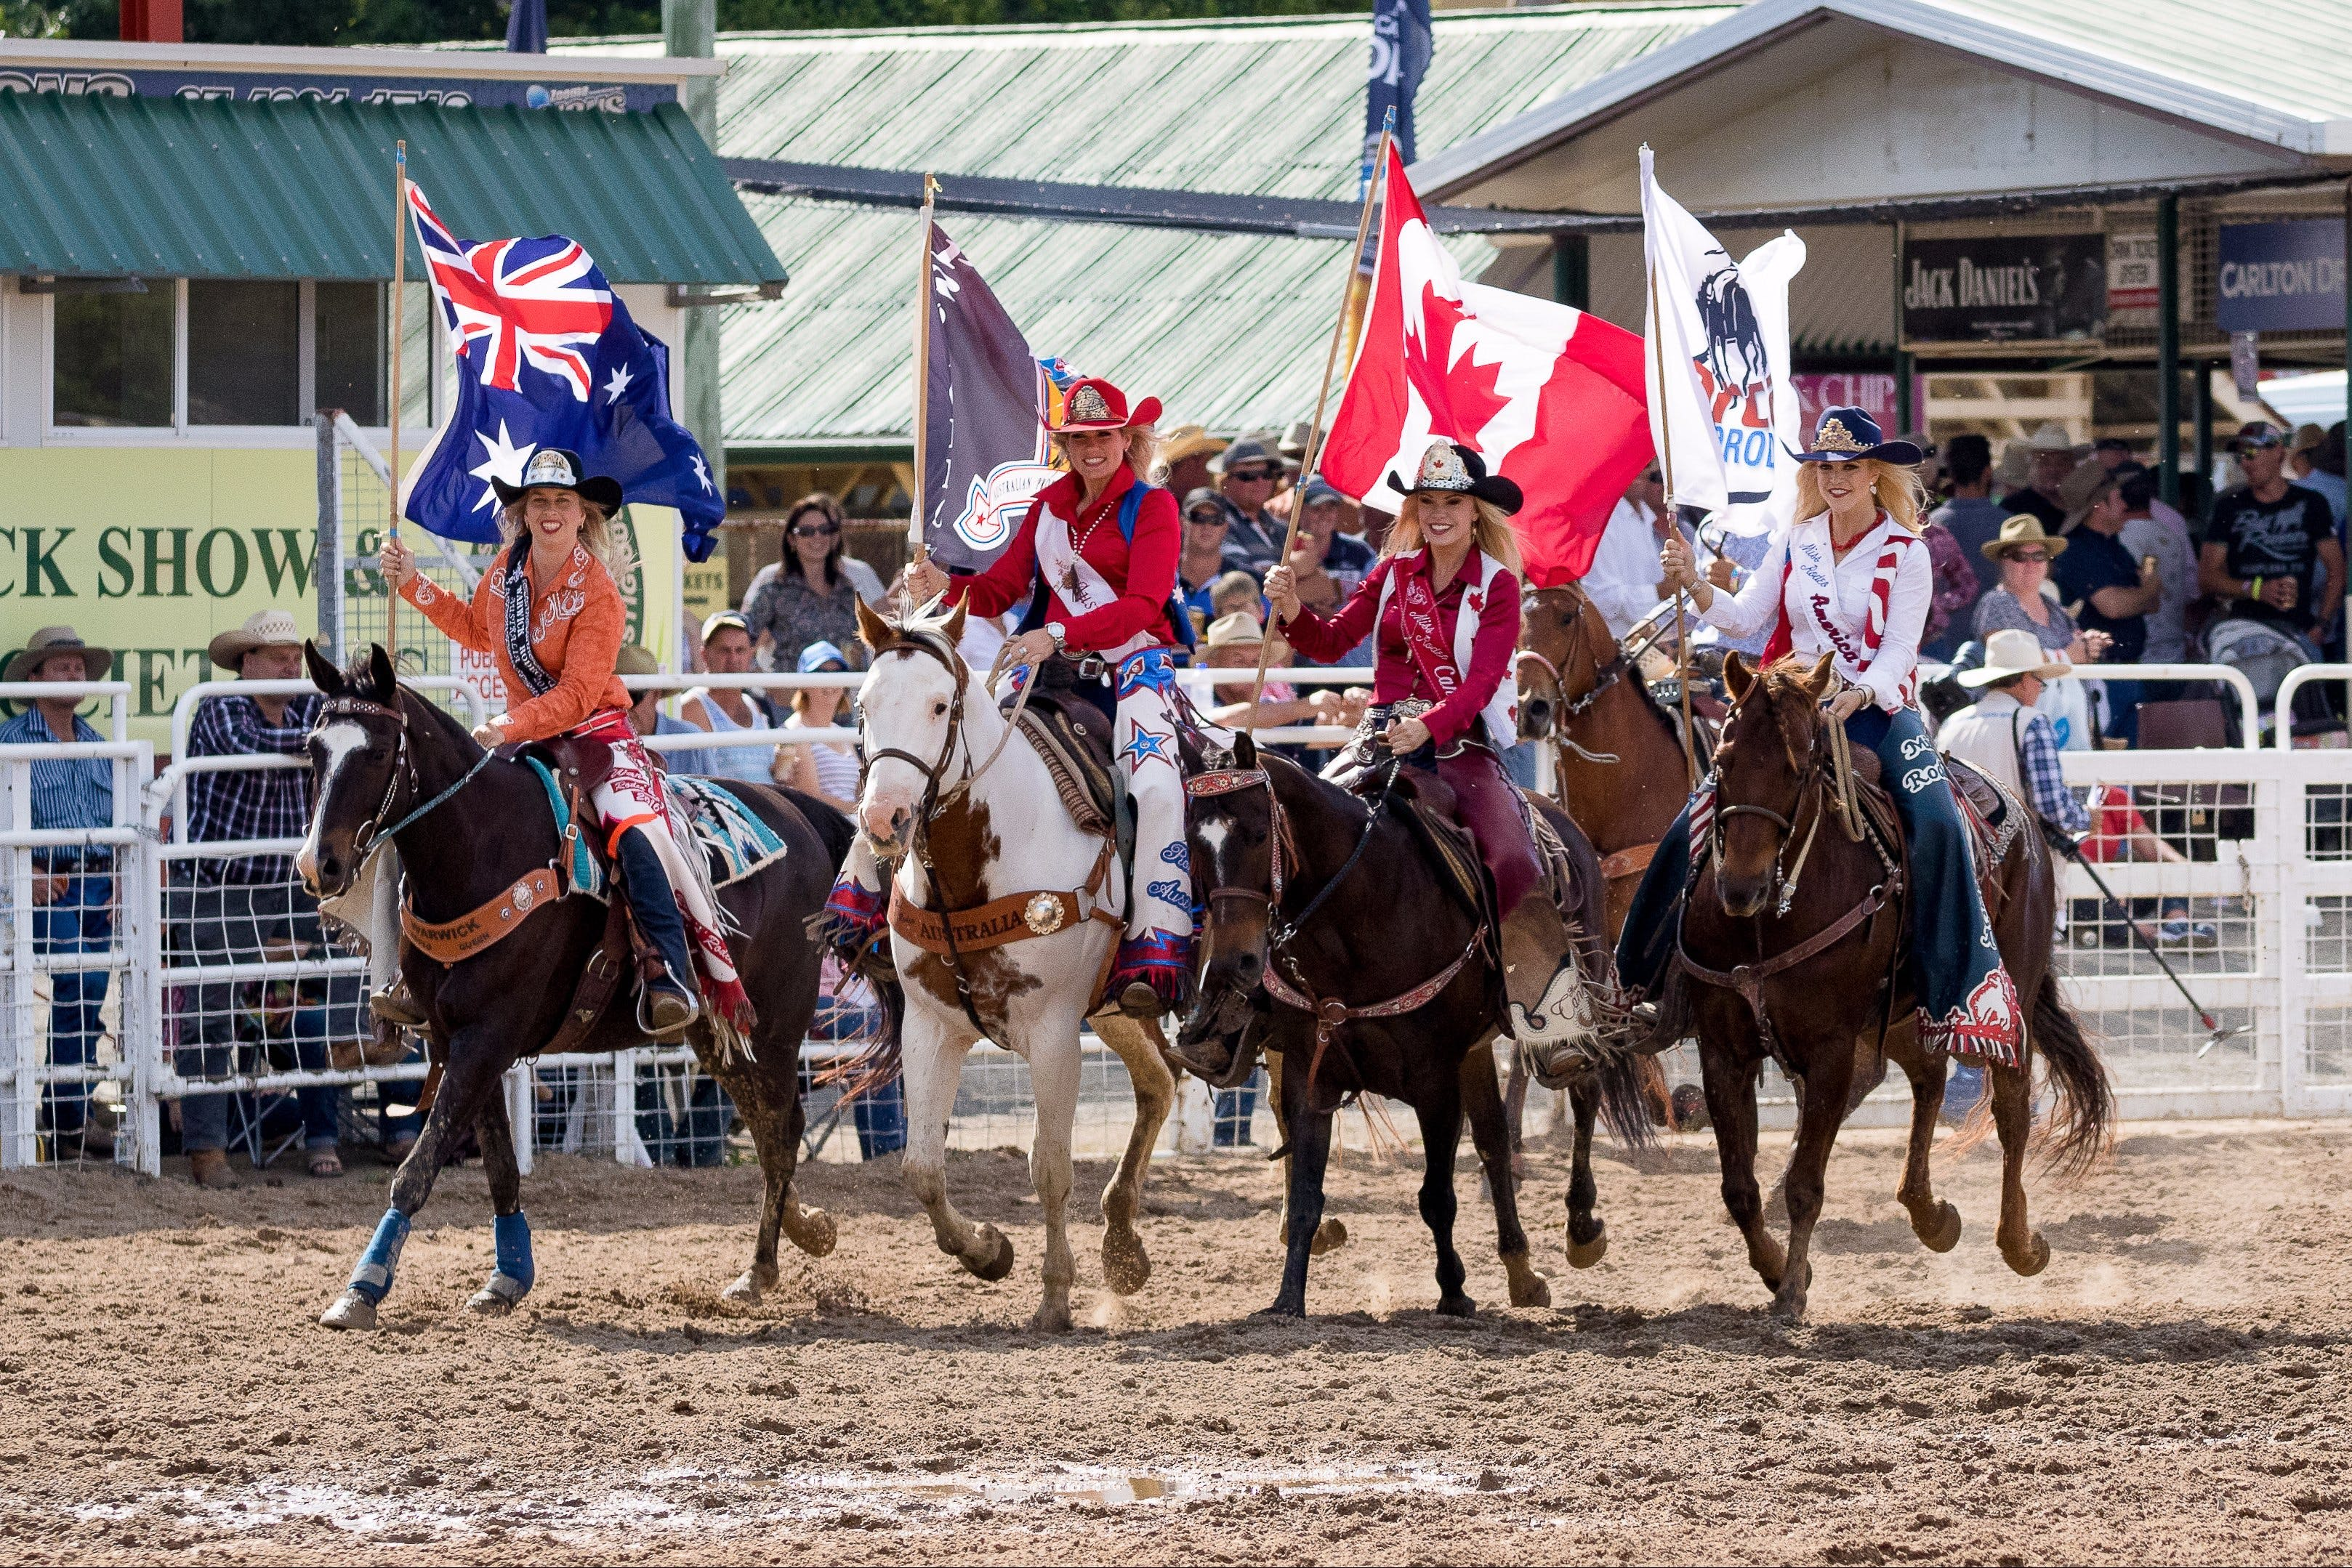 Warwick Rodeo National APRA National Finals and Warwick Gold Cup Campdraft - Lightning Ridge Tourism